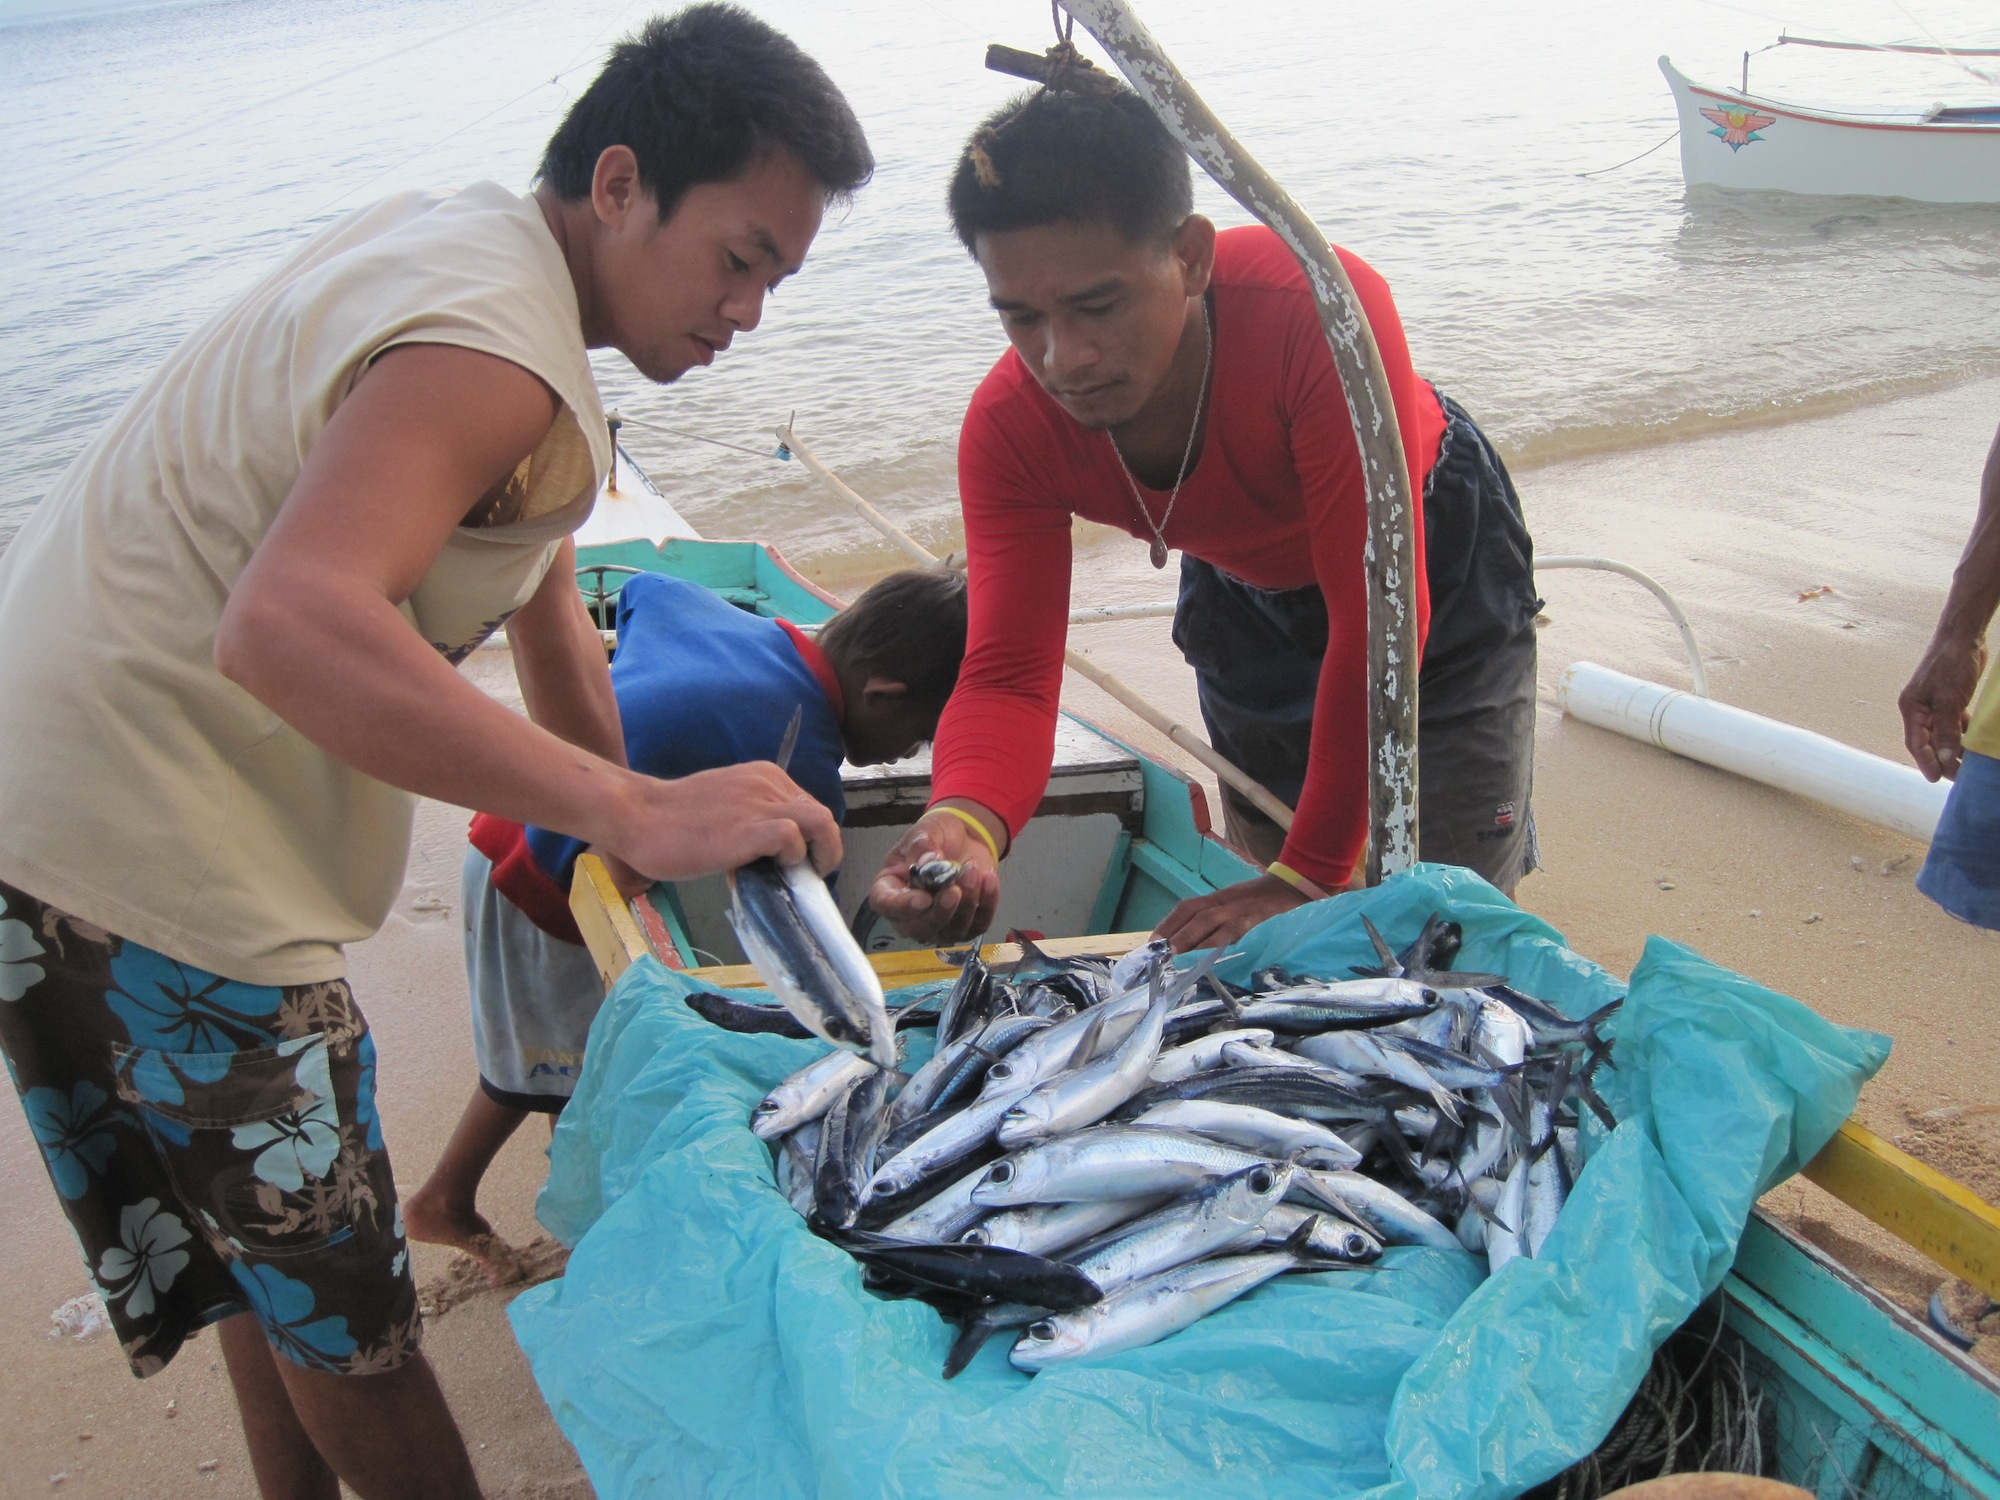 Fishers in Cantilan, Philippines examine their catch.